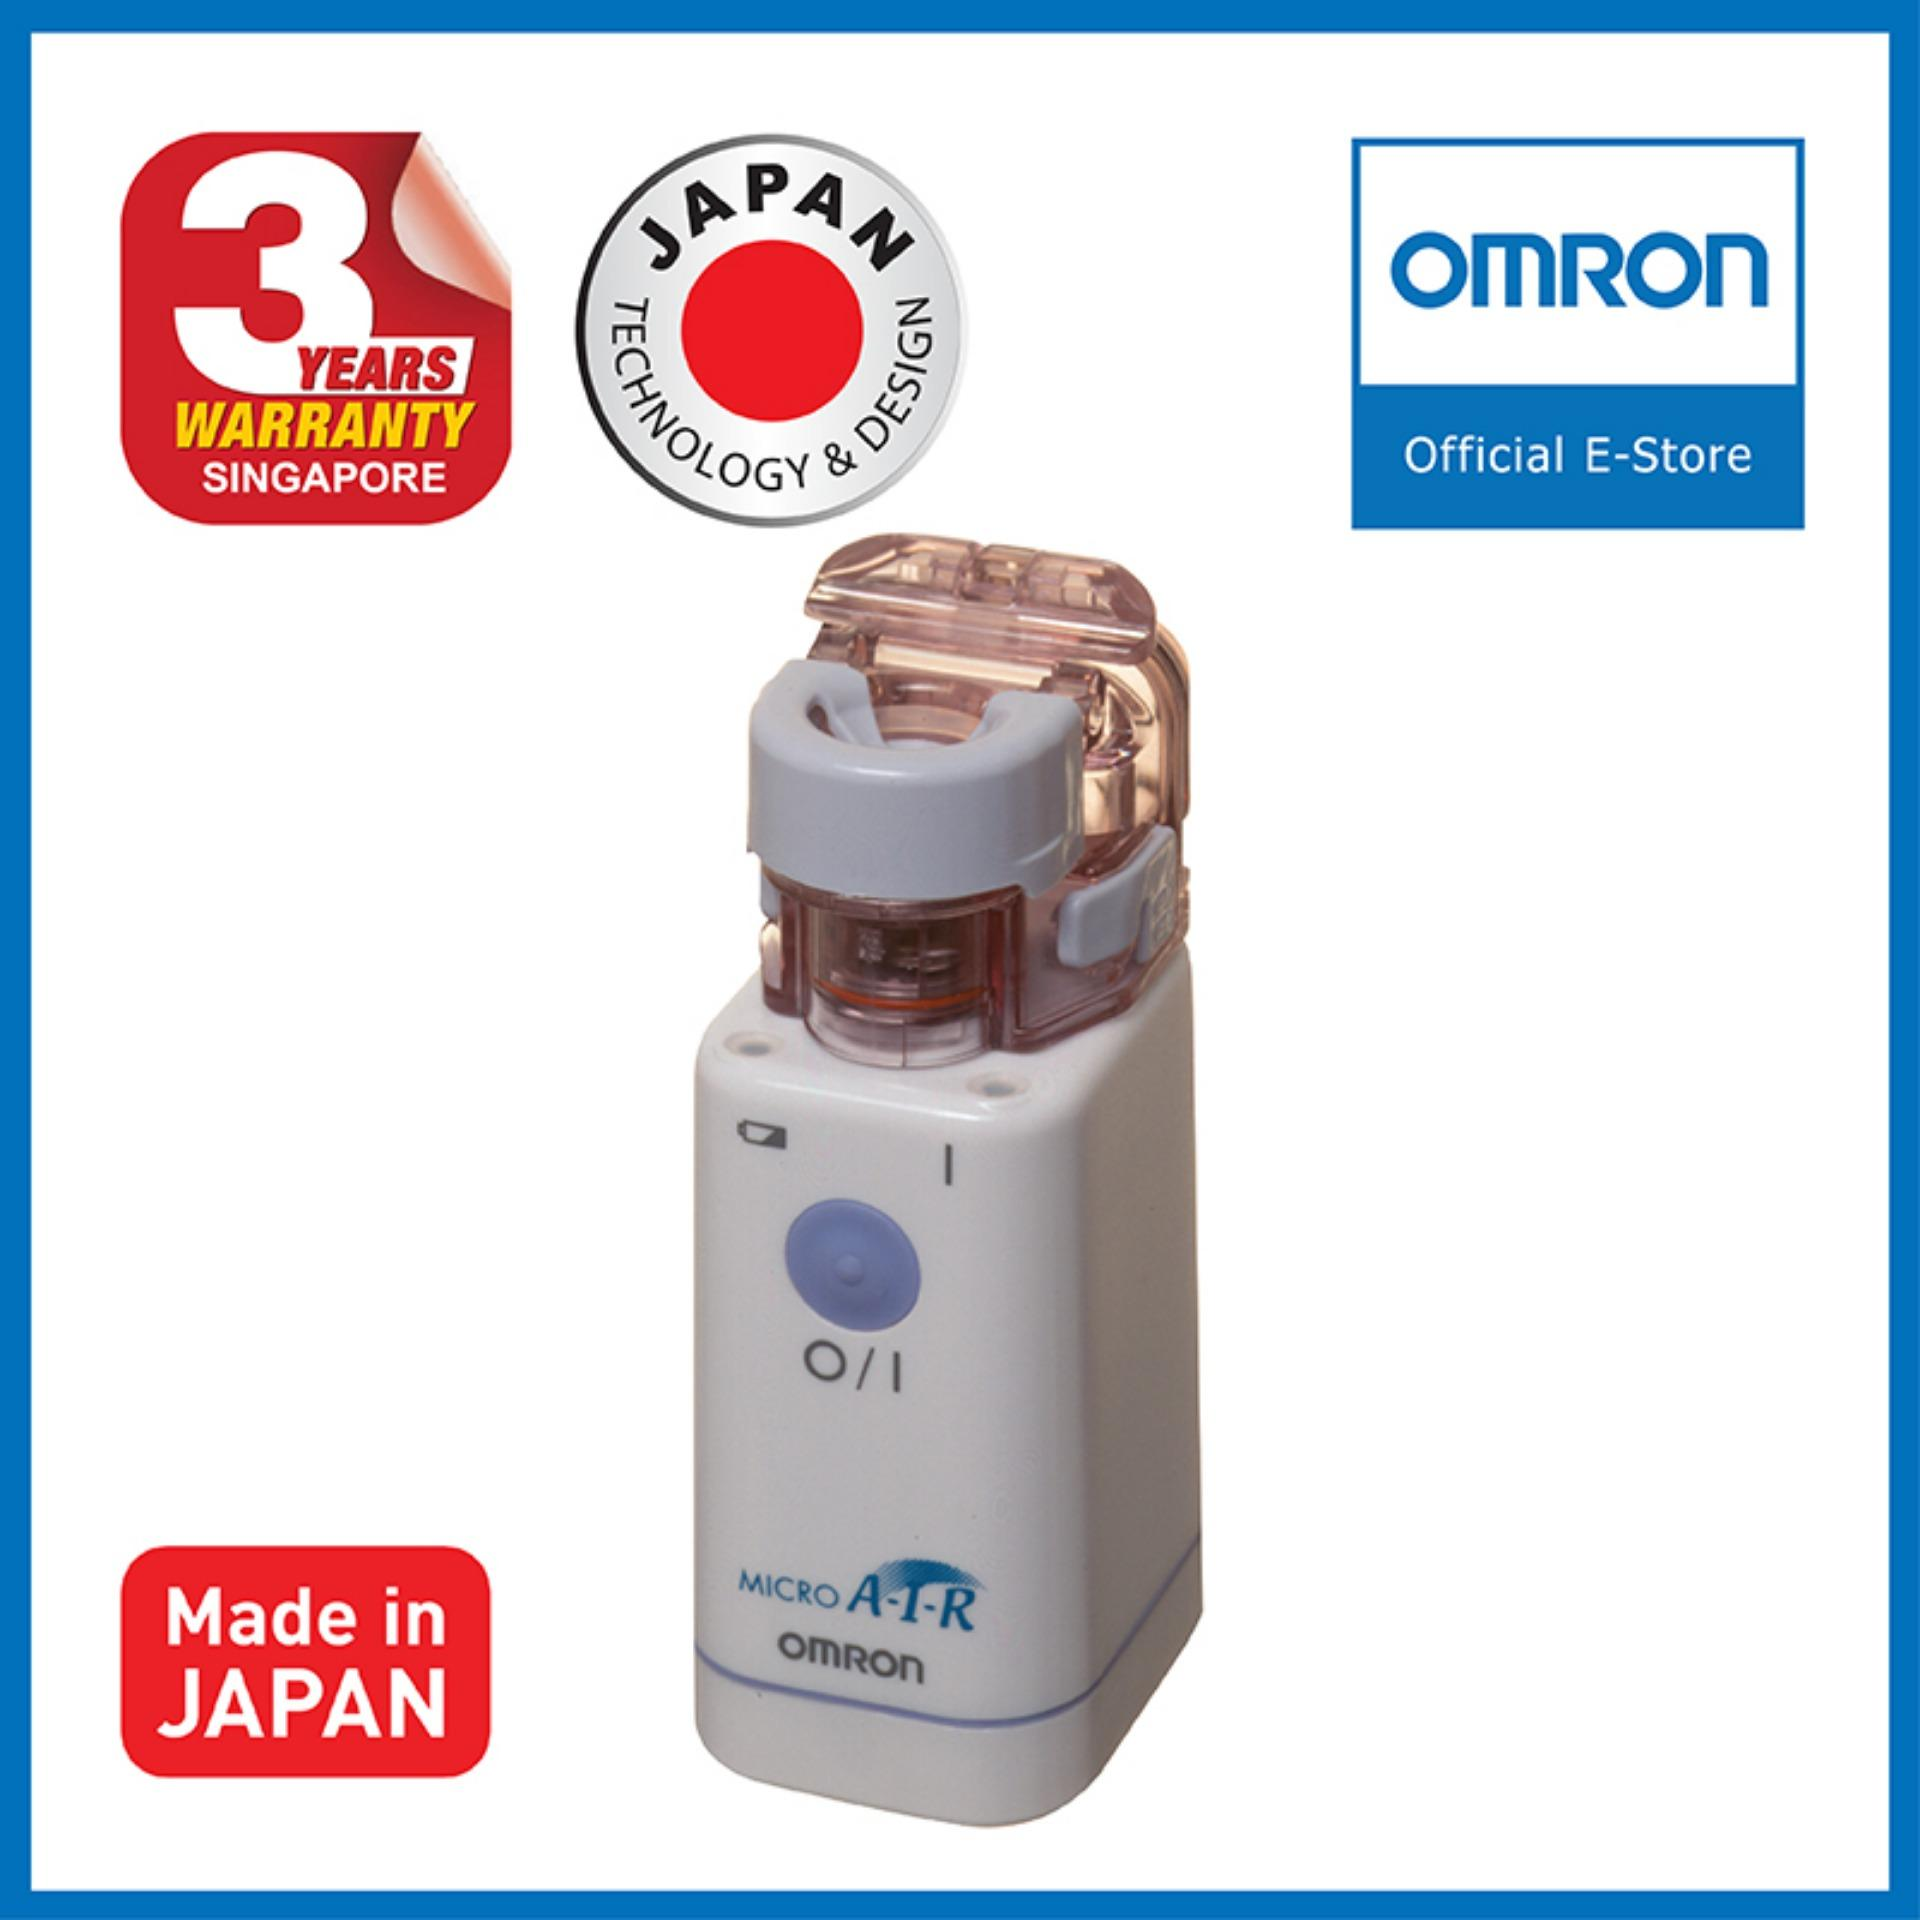 Who Sells Omron Mesh Nebulizer Ne U22